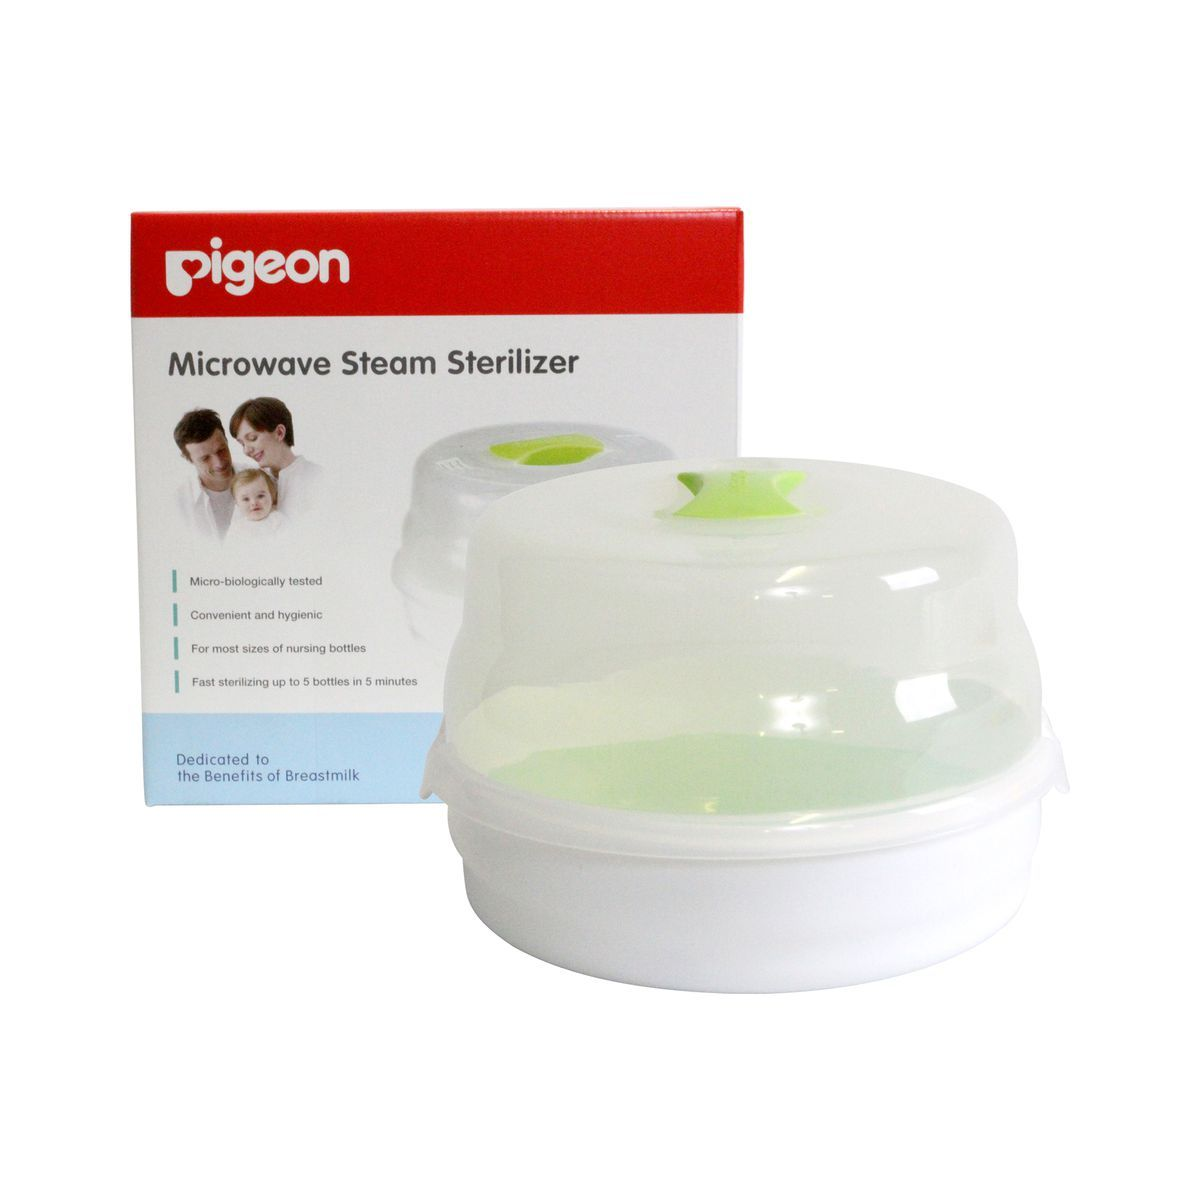 Pigeon - Microwave Steam Sterilizer